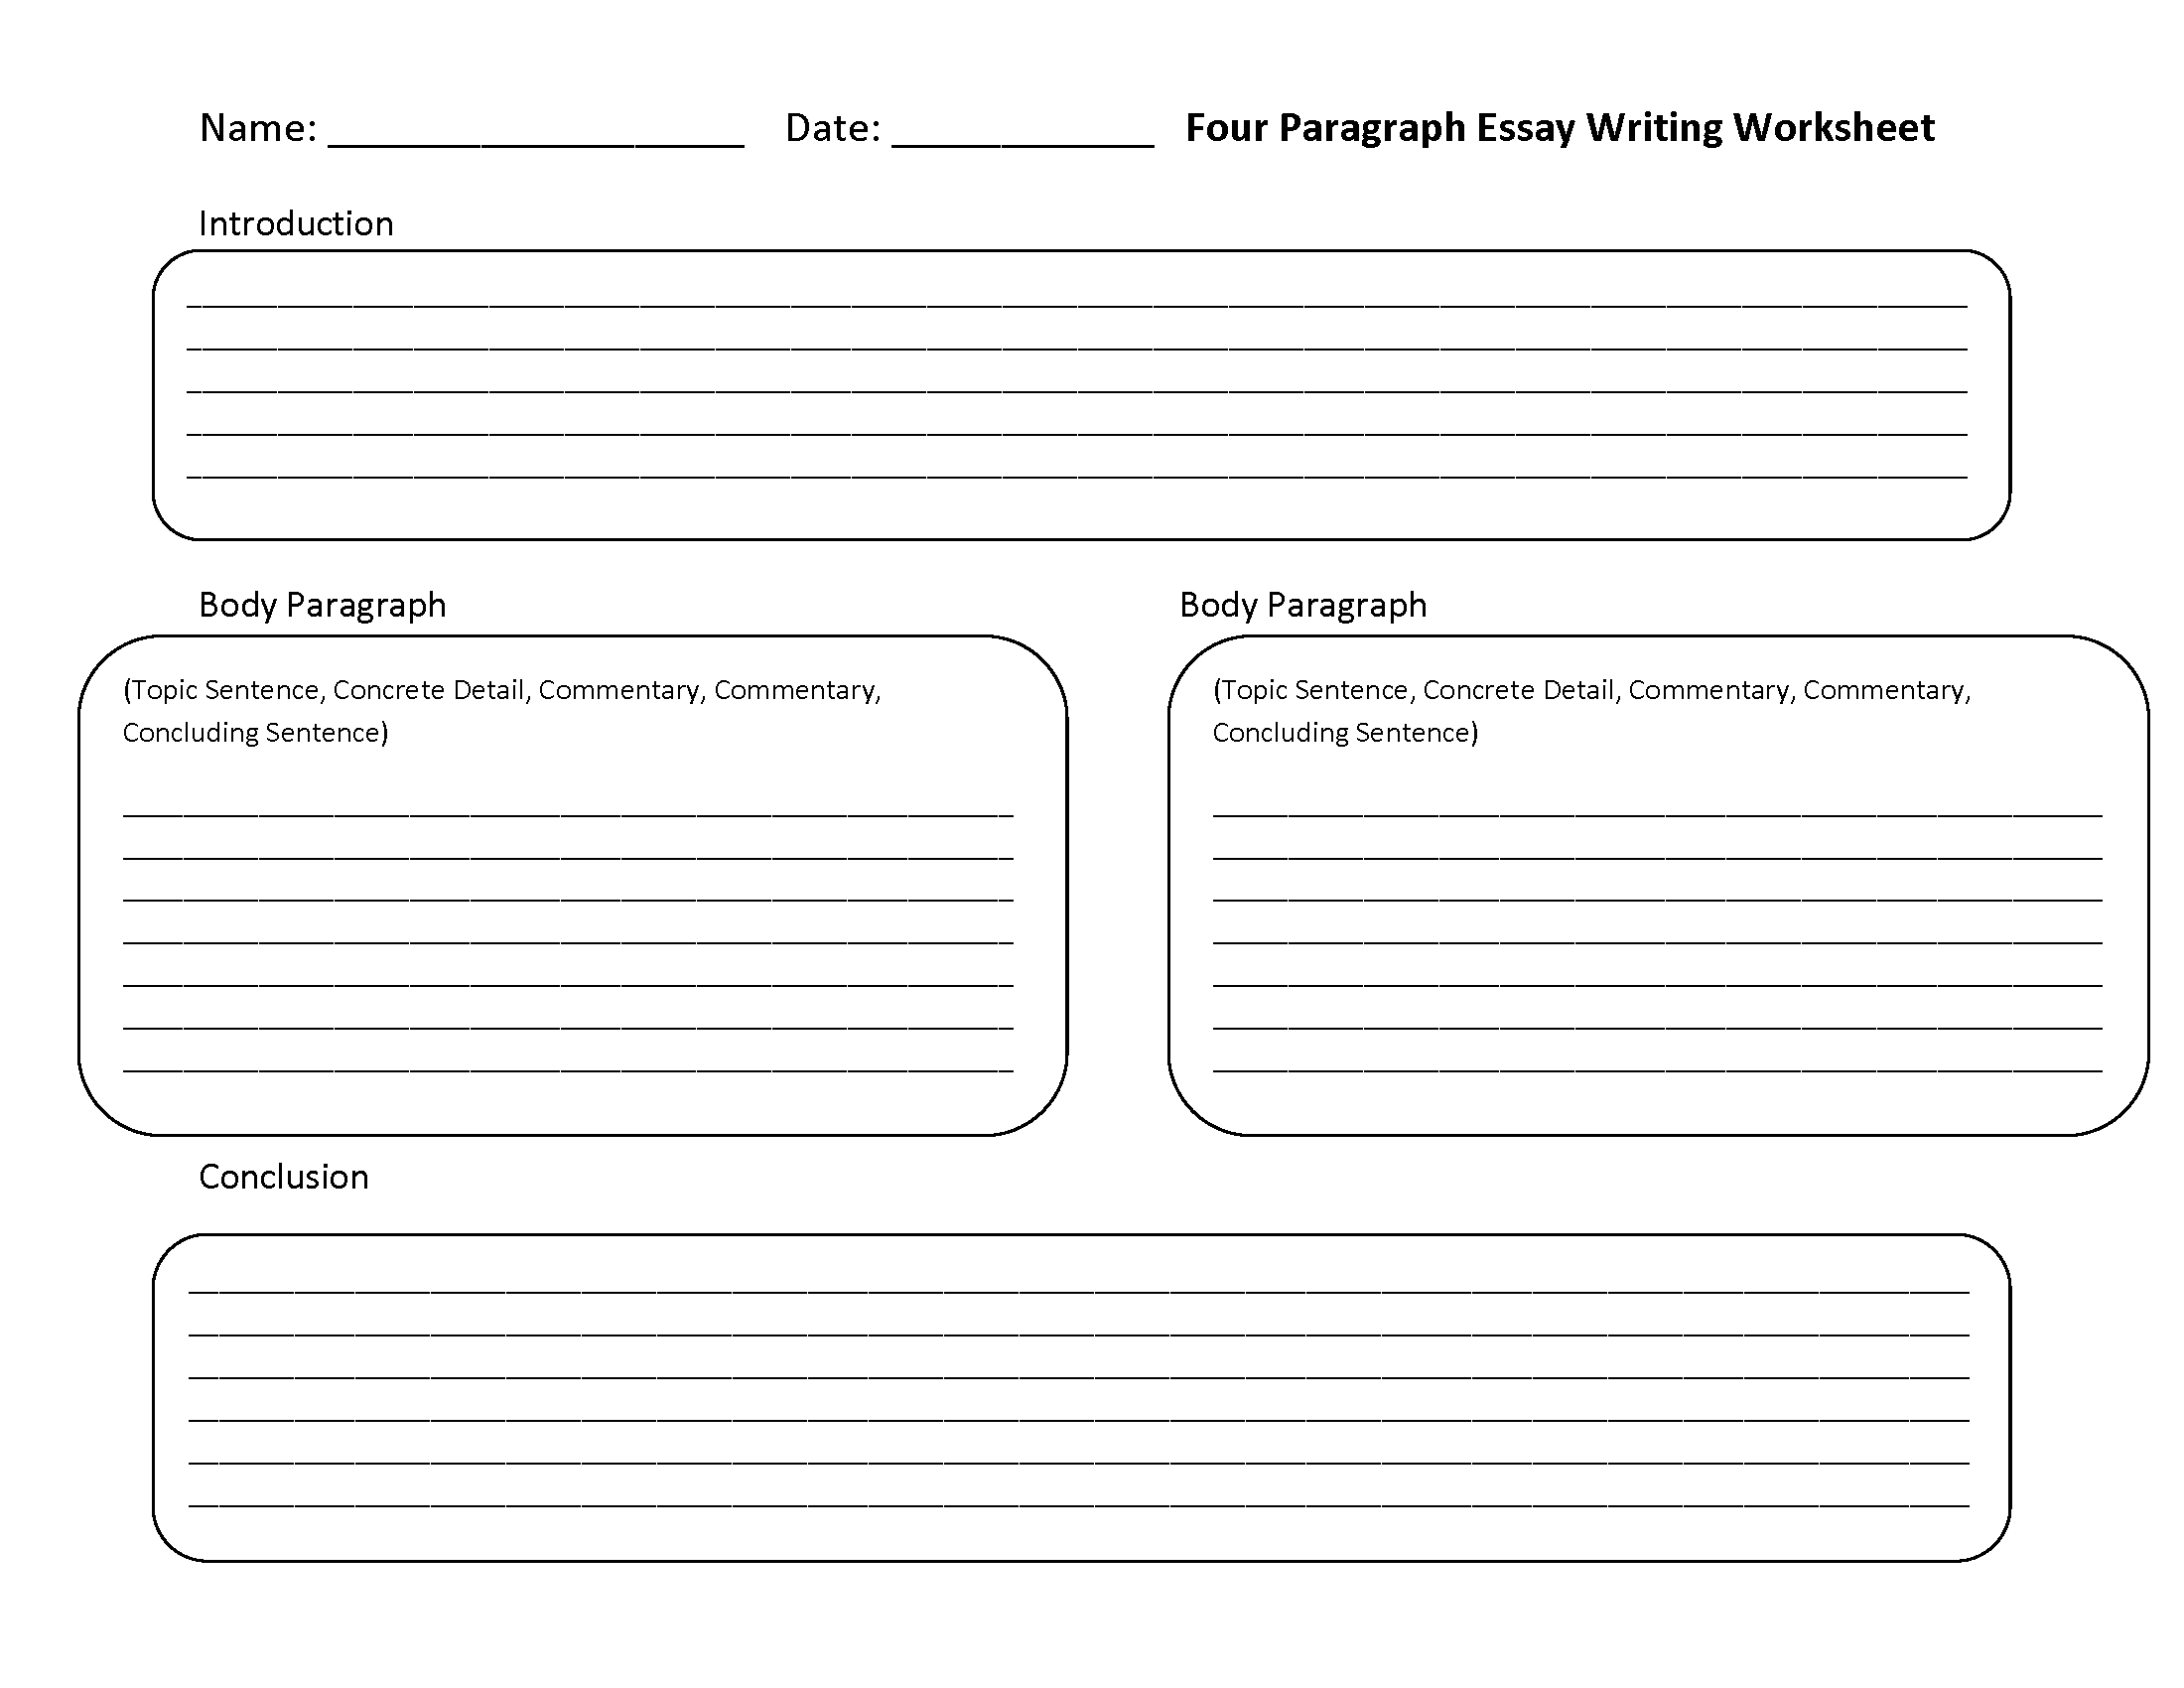 Four Paragraph Essay Writing Worksheets | Writing Worksheets